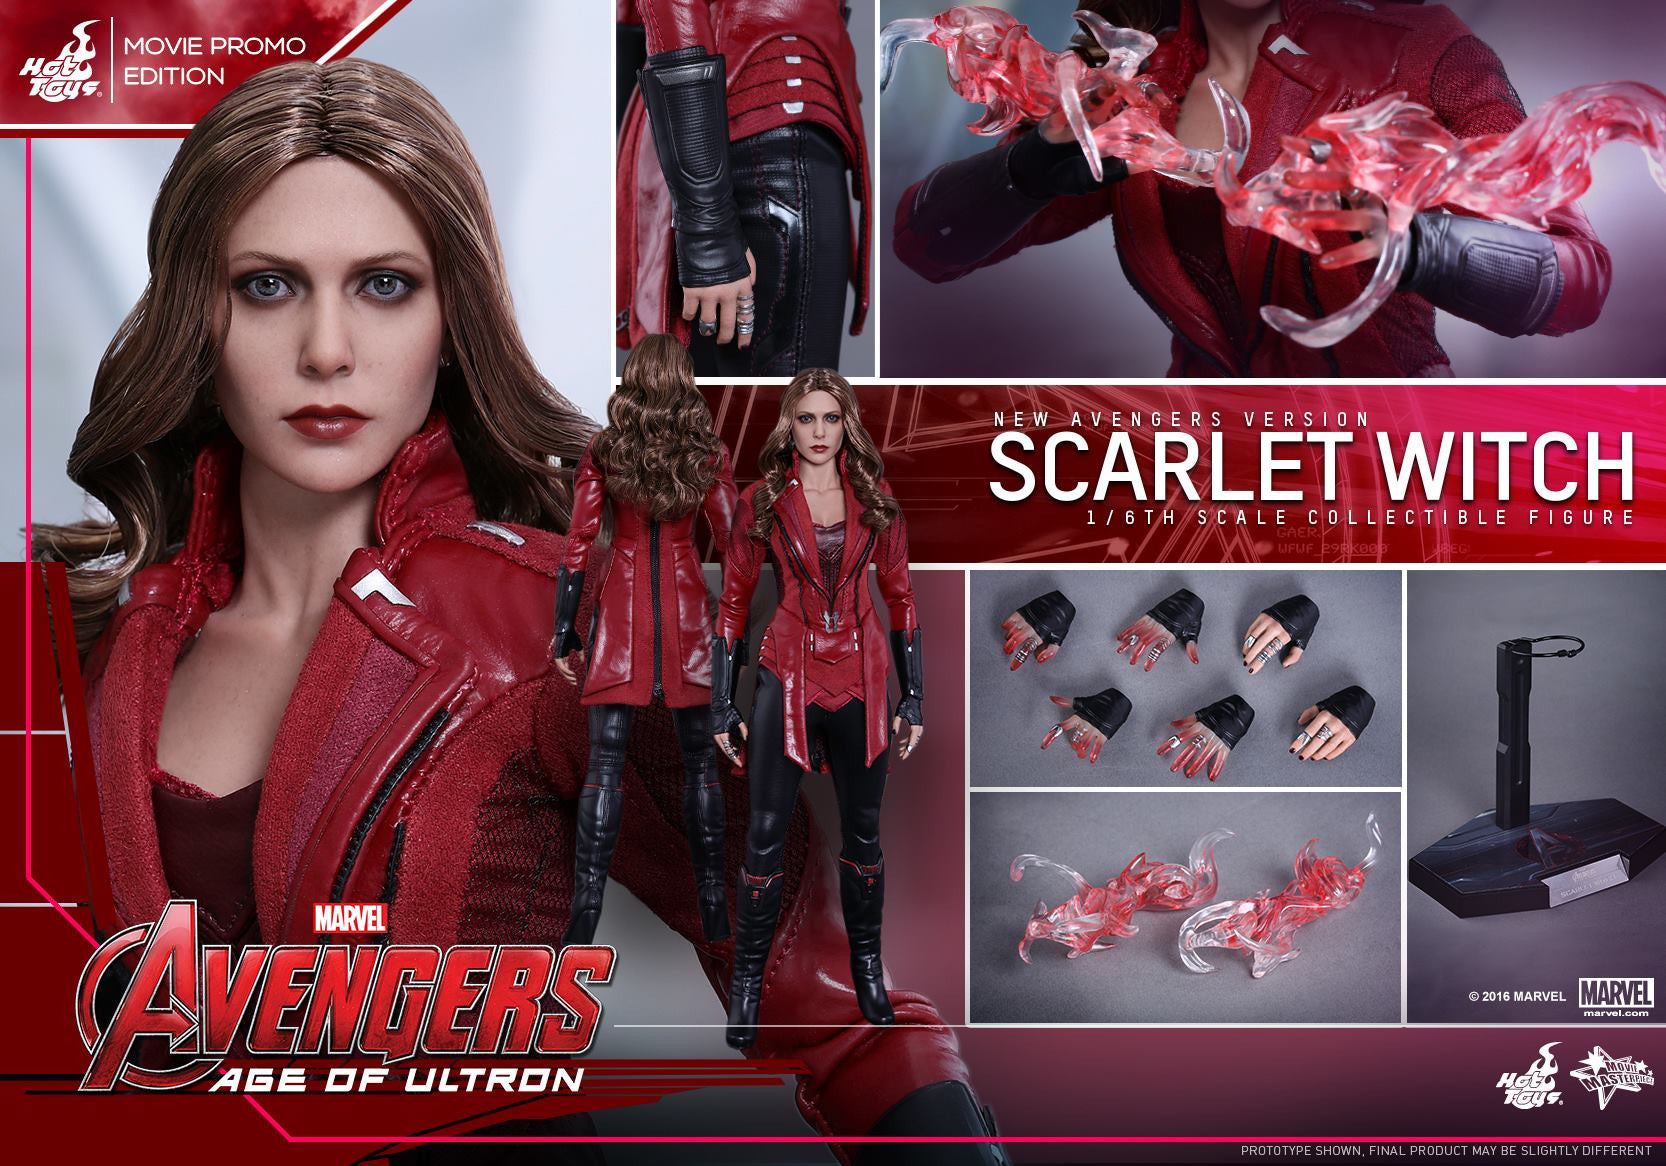 Toys - Avengers: Age of Ultron - Scarlet Witch (New Avengers Version) Movie Promo MMS357 - Marvelous Toys - 10